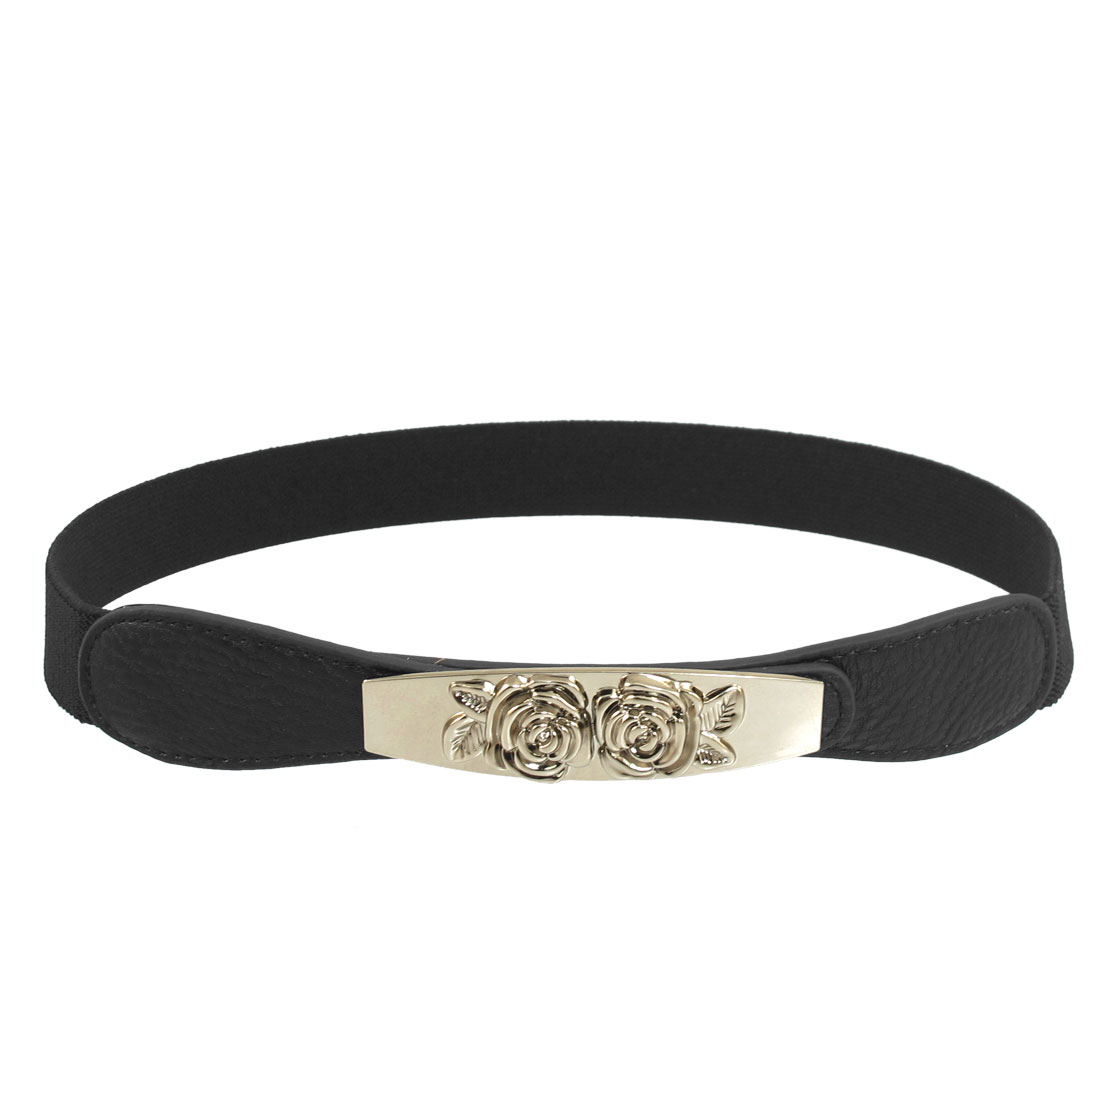 Women Black Dual Floral Accent Hook Buckle Elastic Cinch Belt 26mm Width